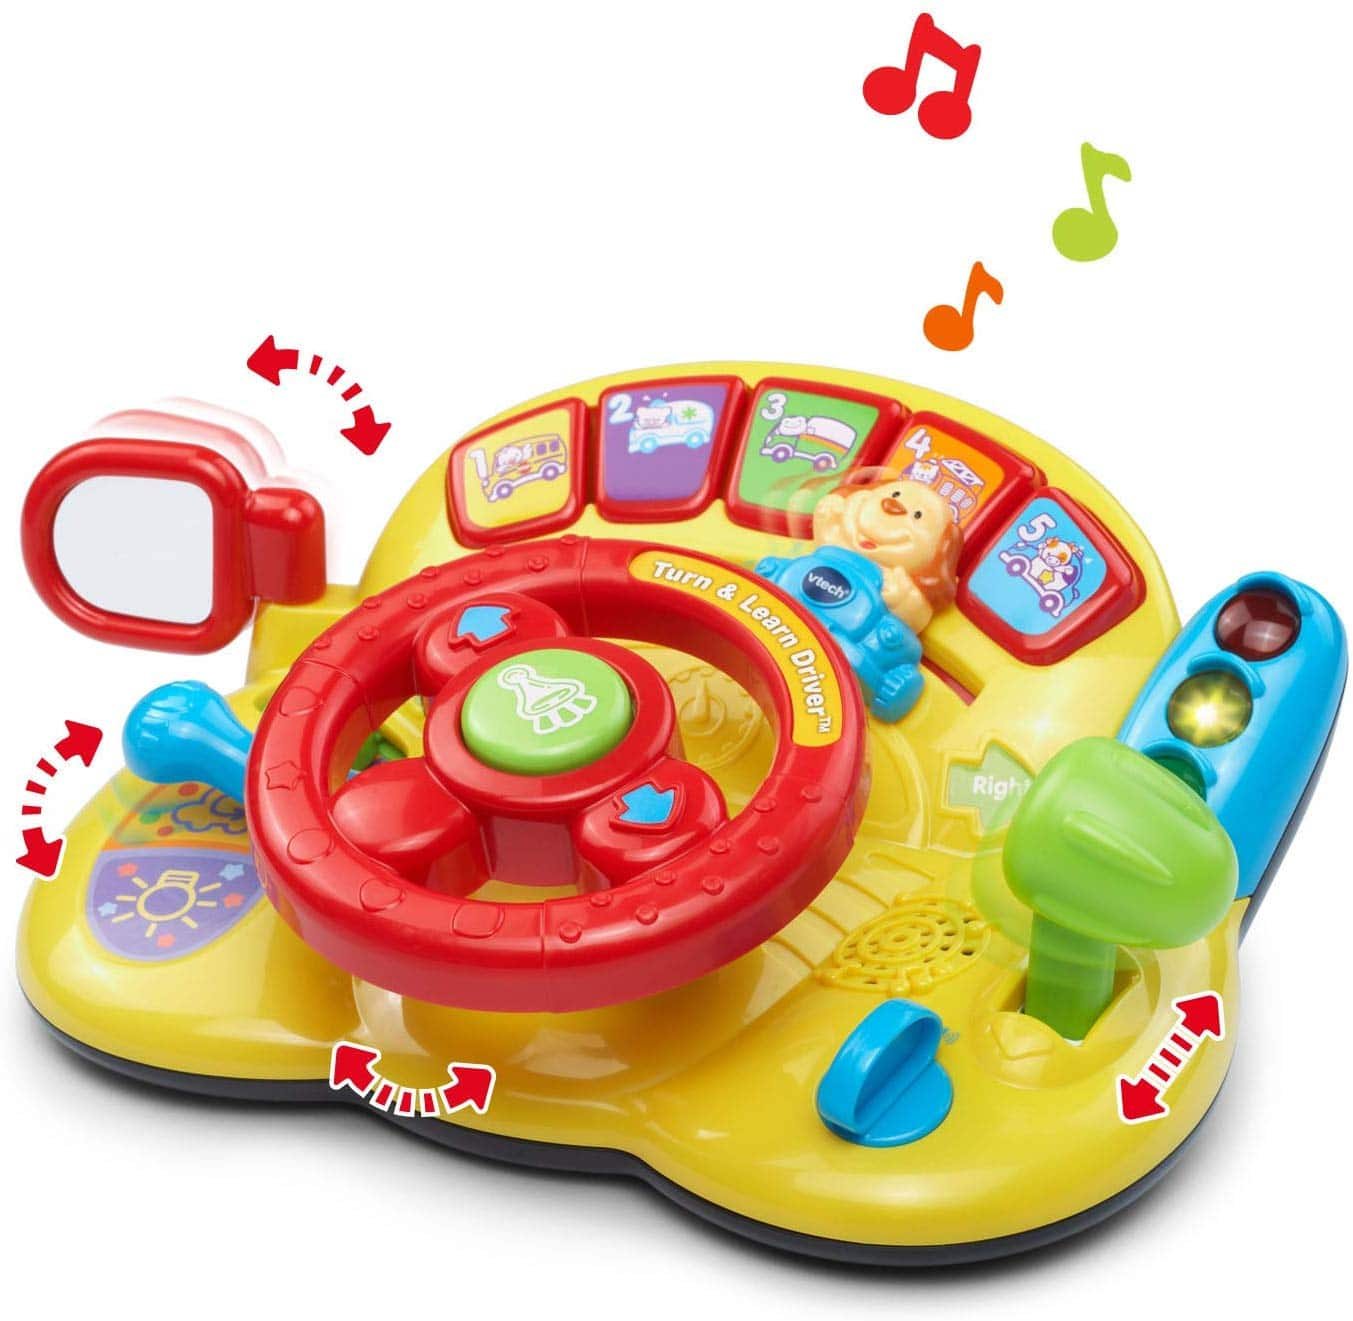 VTech Turn and Learn Driver $9.99